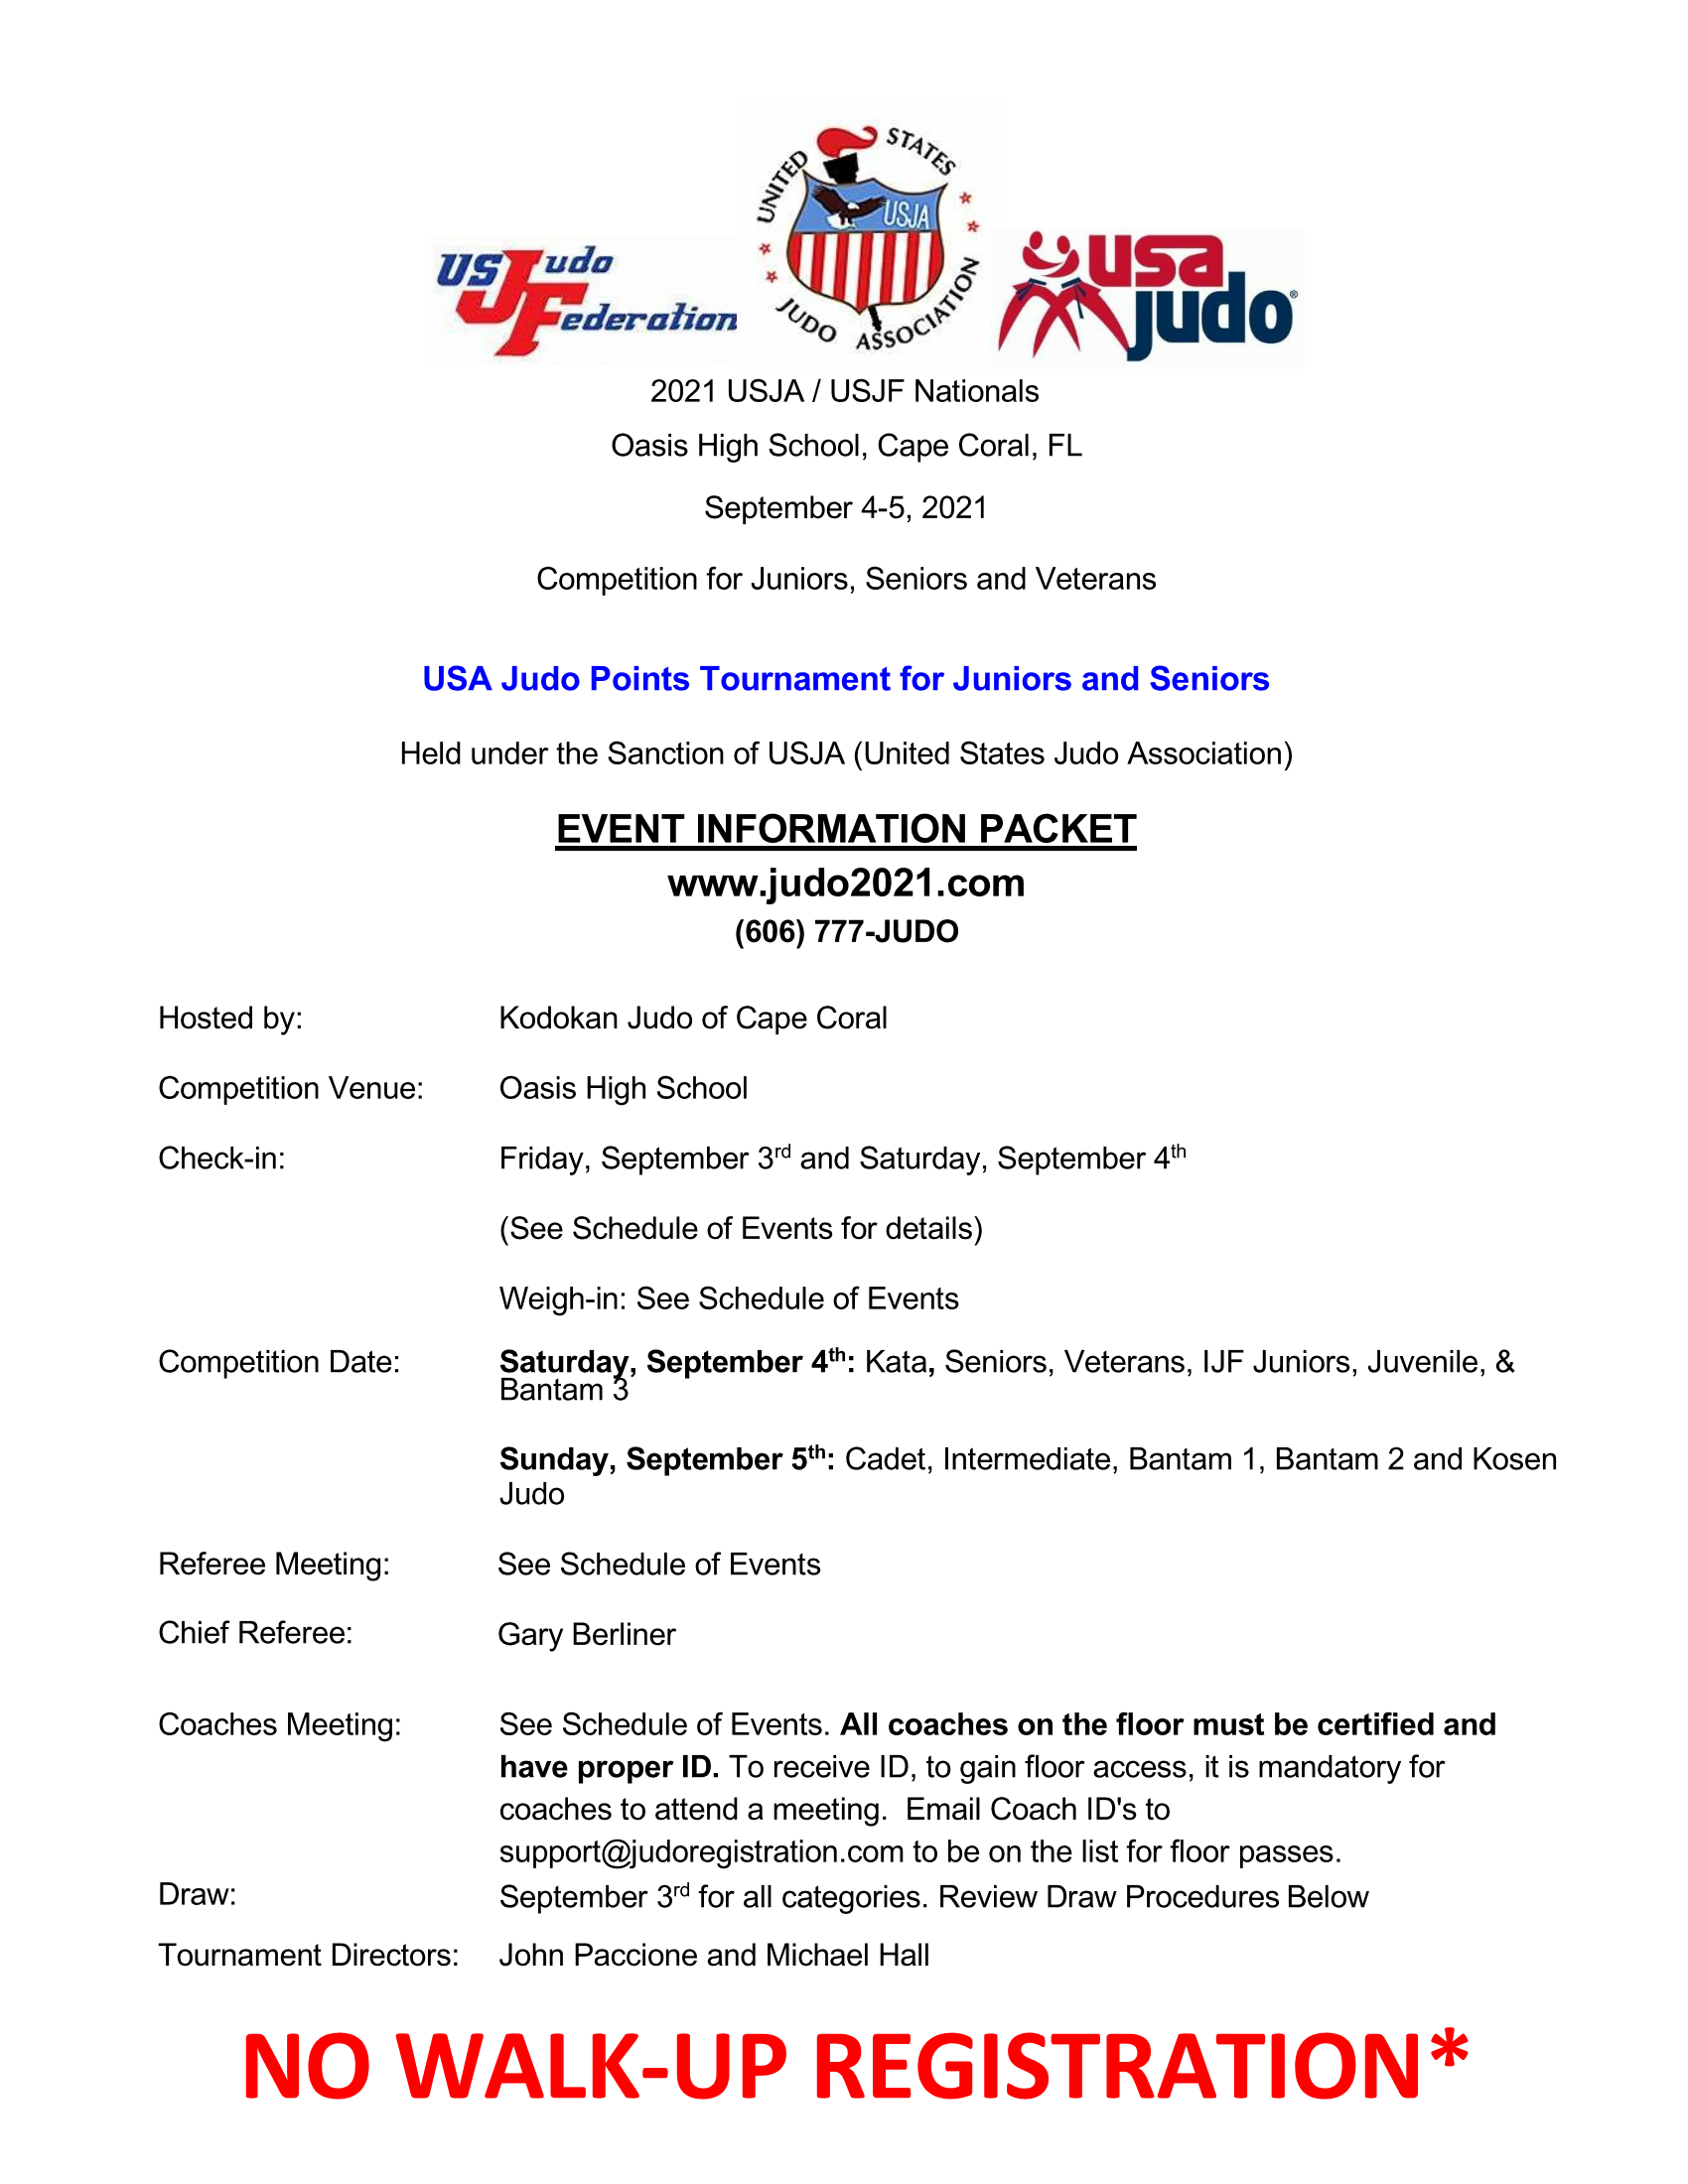 front page of tournament packet from www.judo2021.com